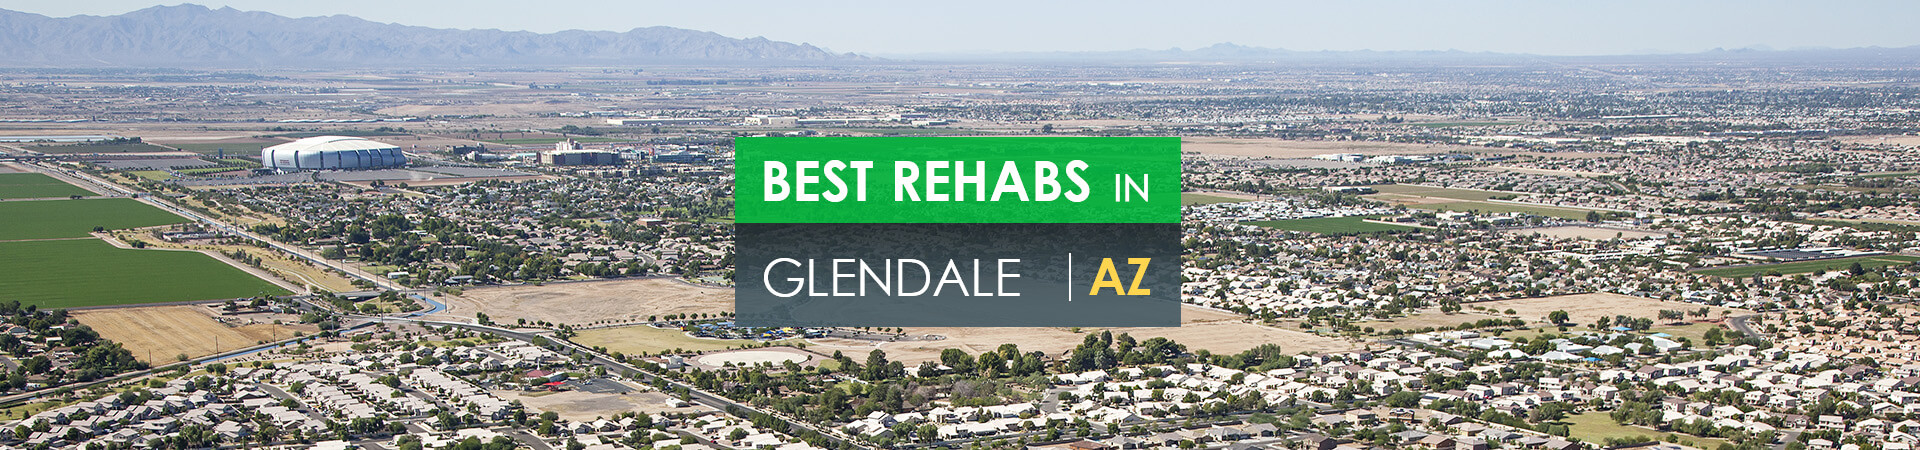 Best rehabs in Glendale, AZ